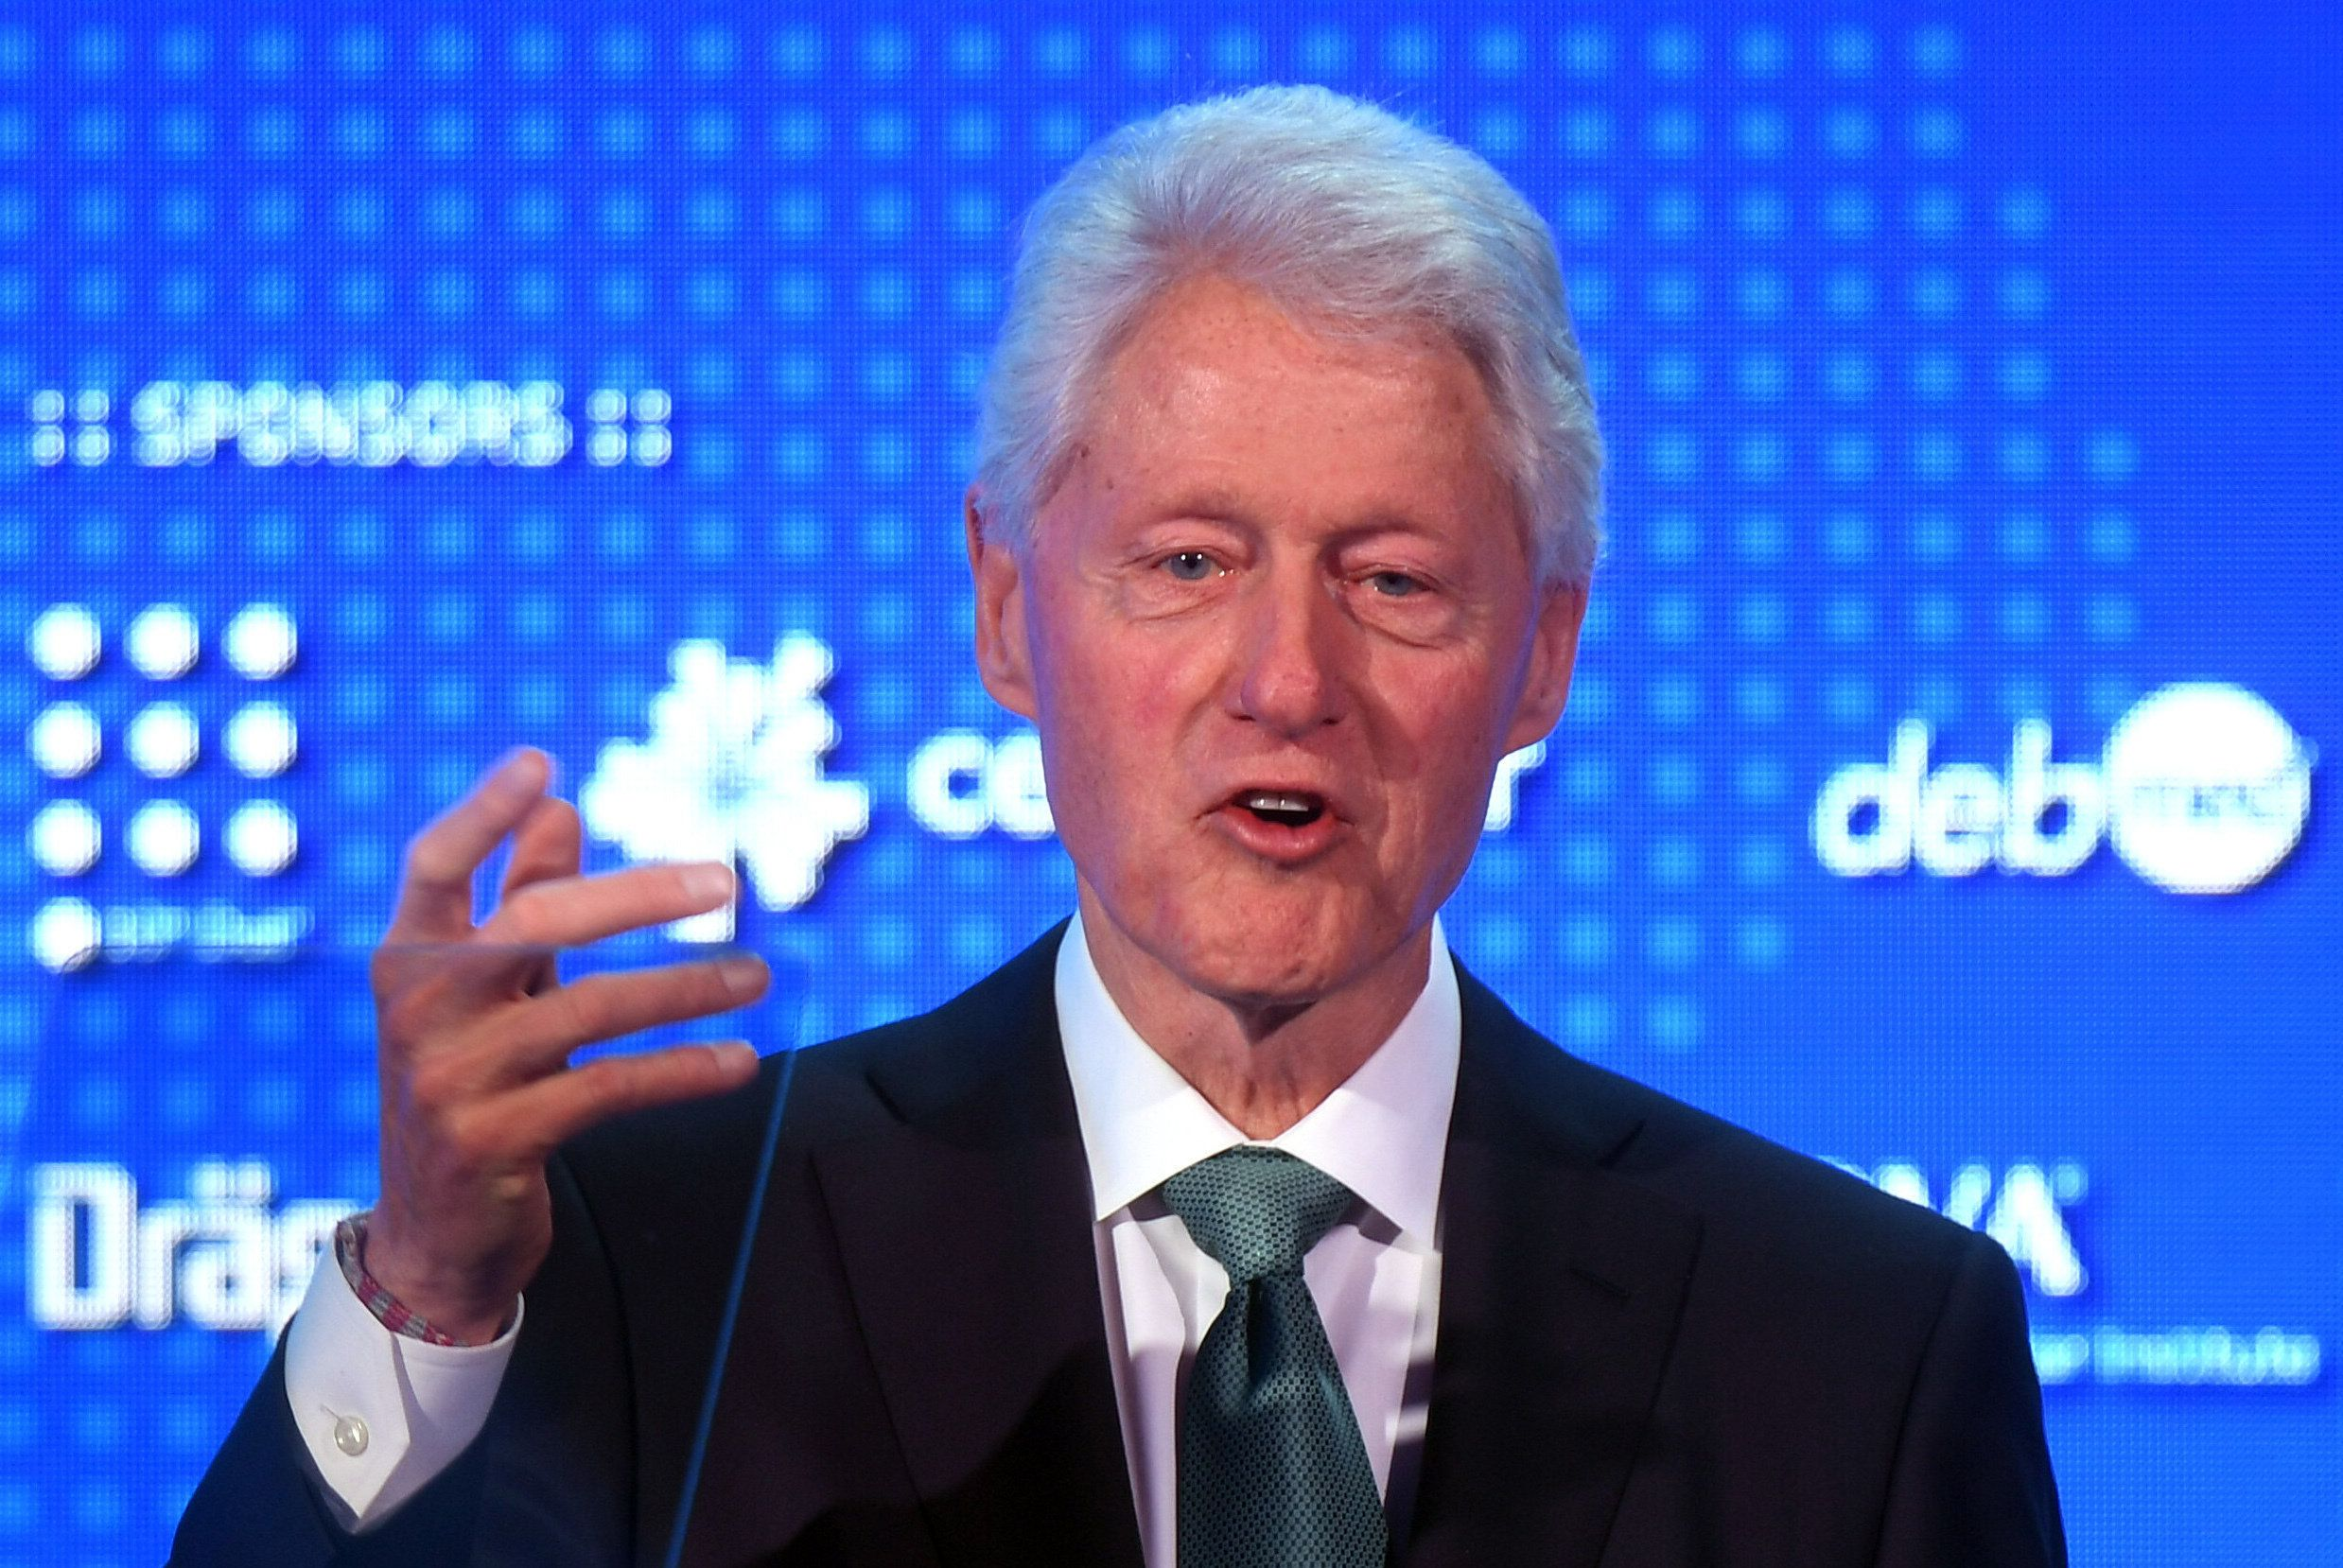 Former US President Bill Clinton delivers a speech at the World Patient Safety Summit in London. (Photo by Victoria Jones/PA Images via Getty Images)